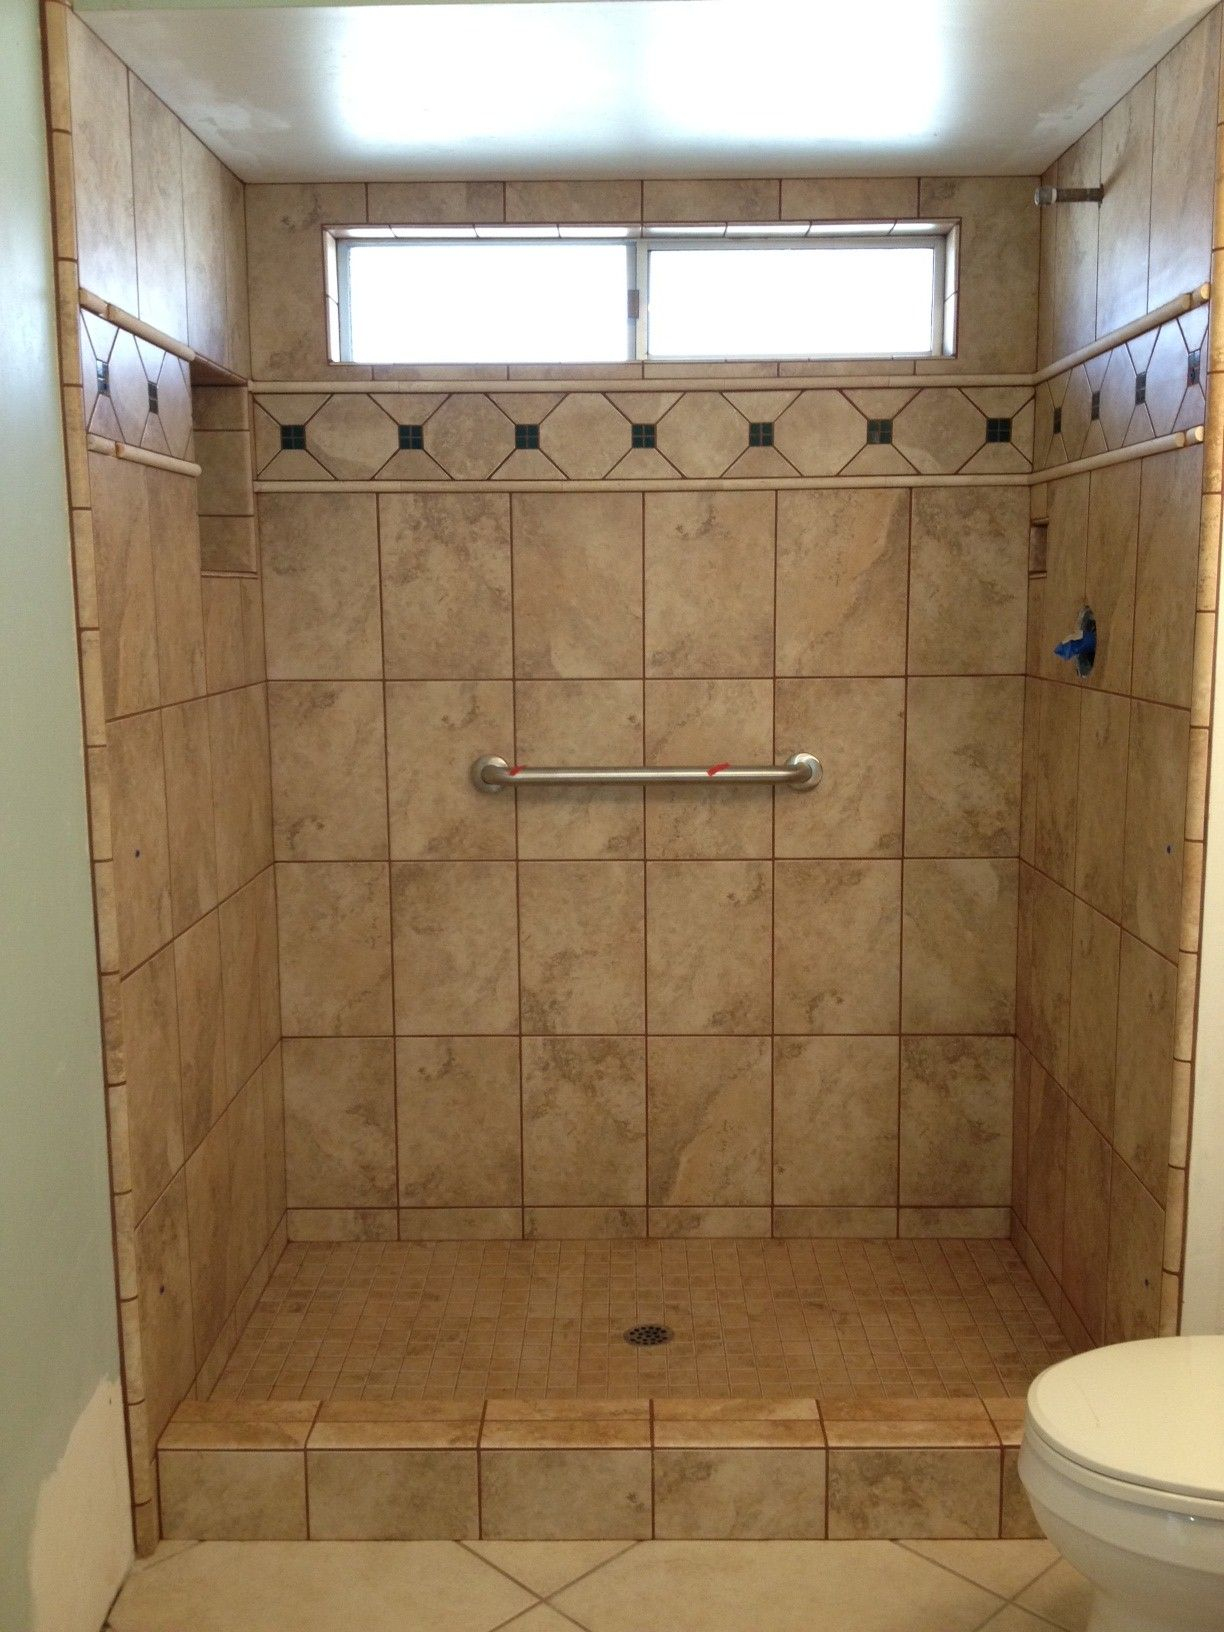 Photos of tiled shower stalls photos gallery custom How to tile a shower